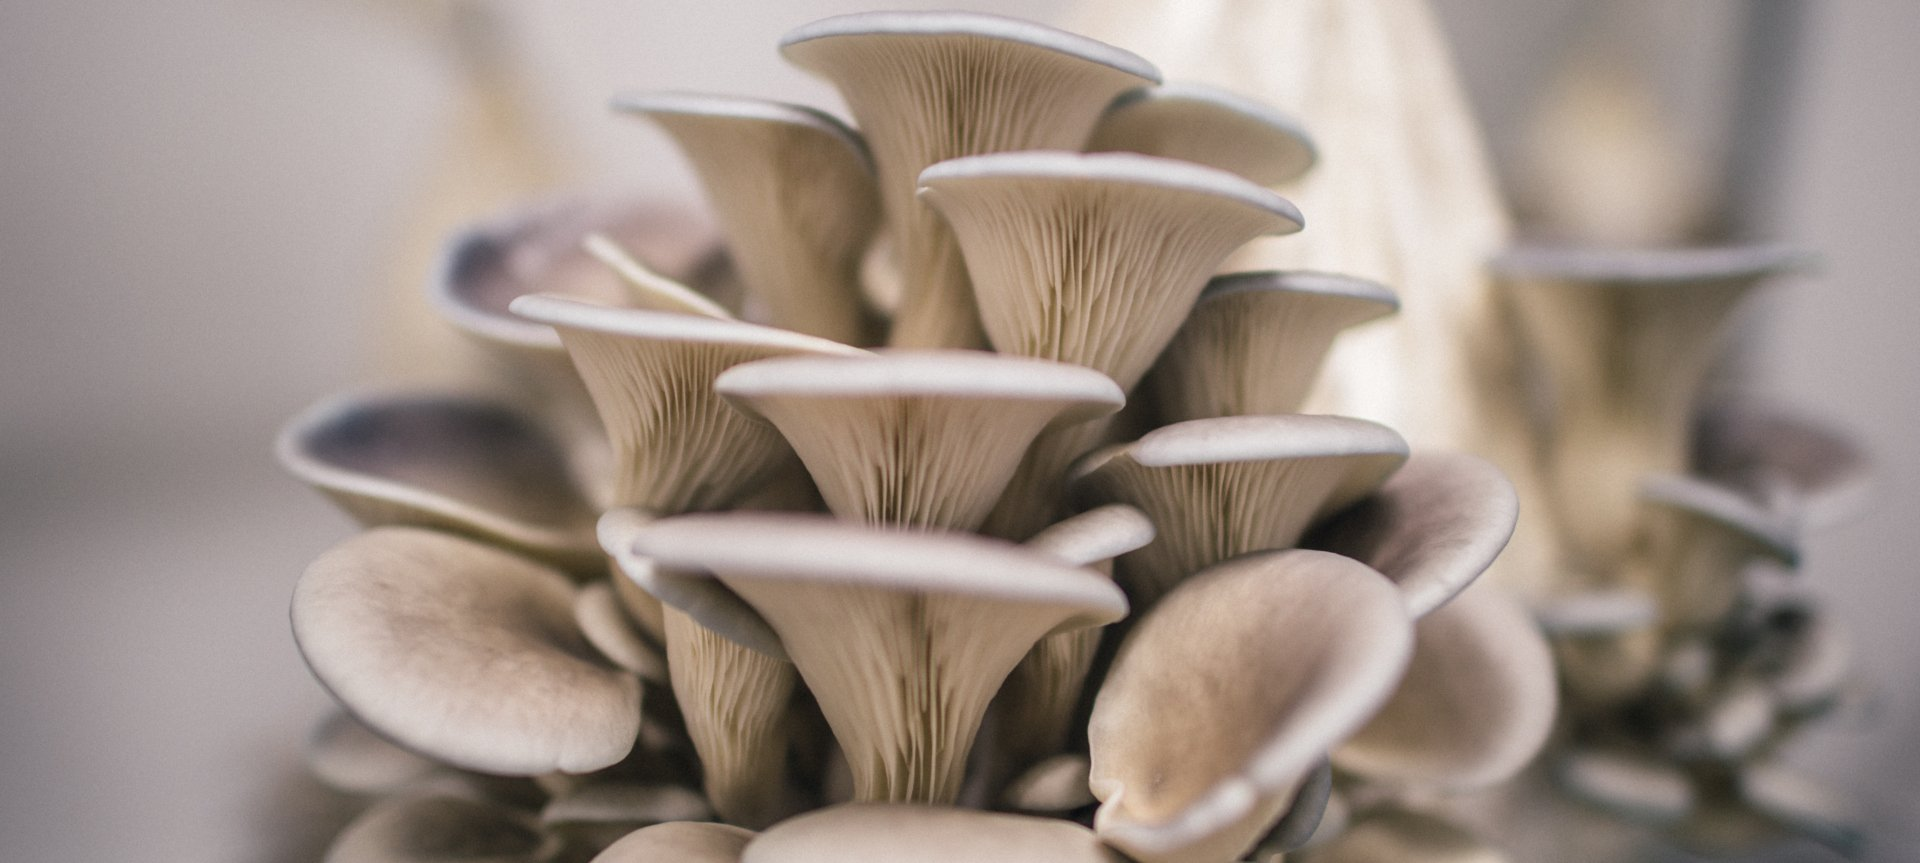 How To Grow Oyster Mushrooms At Home